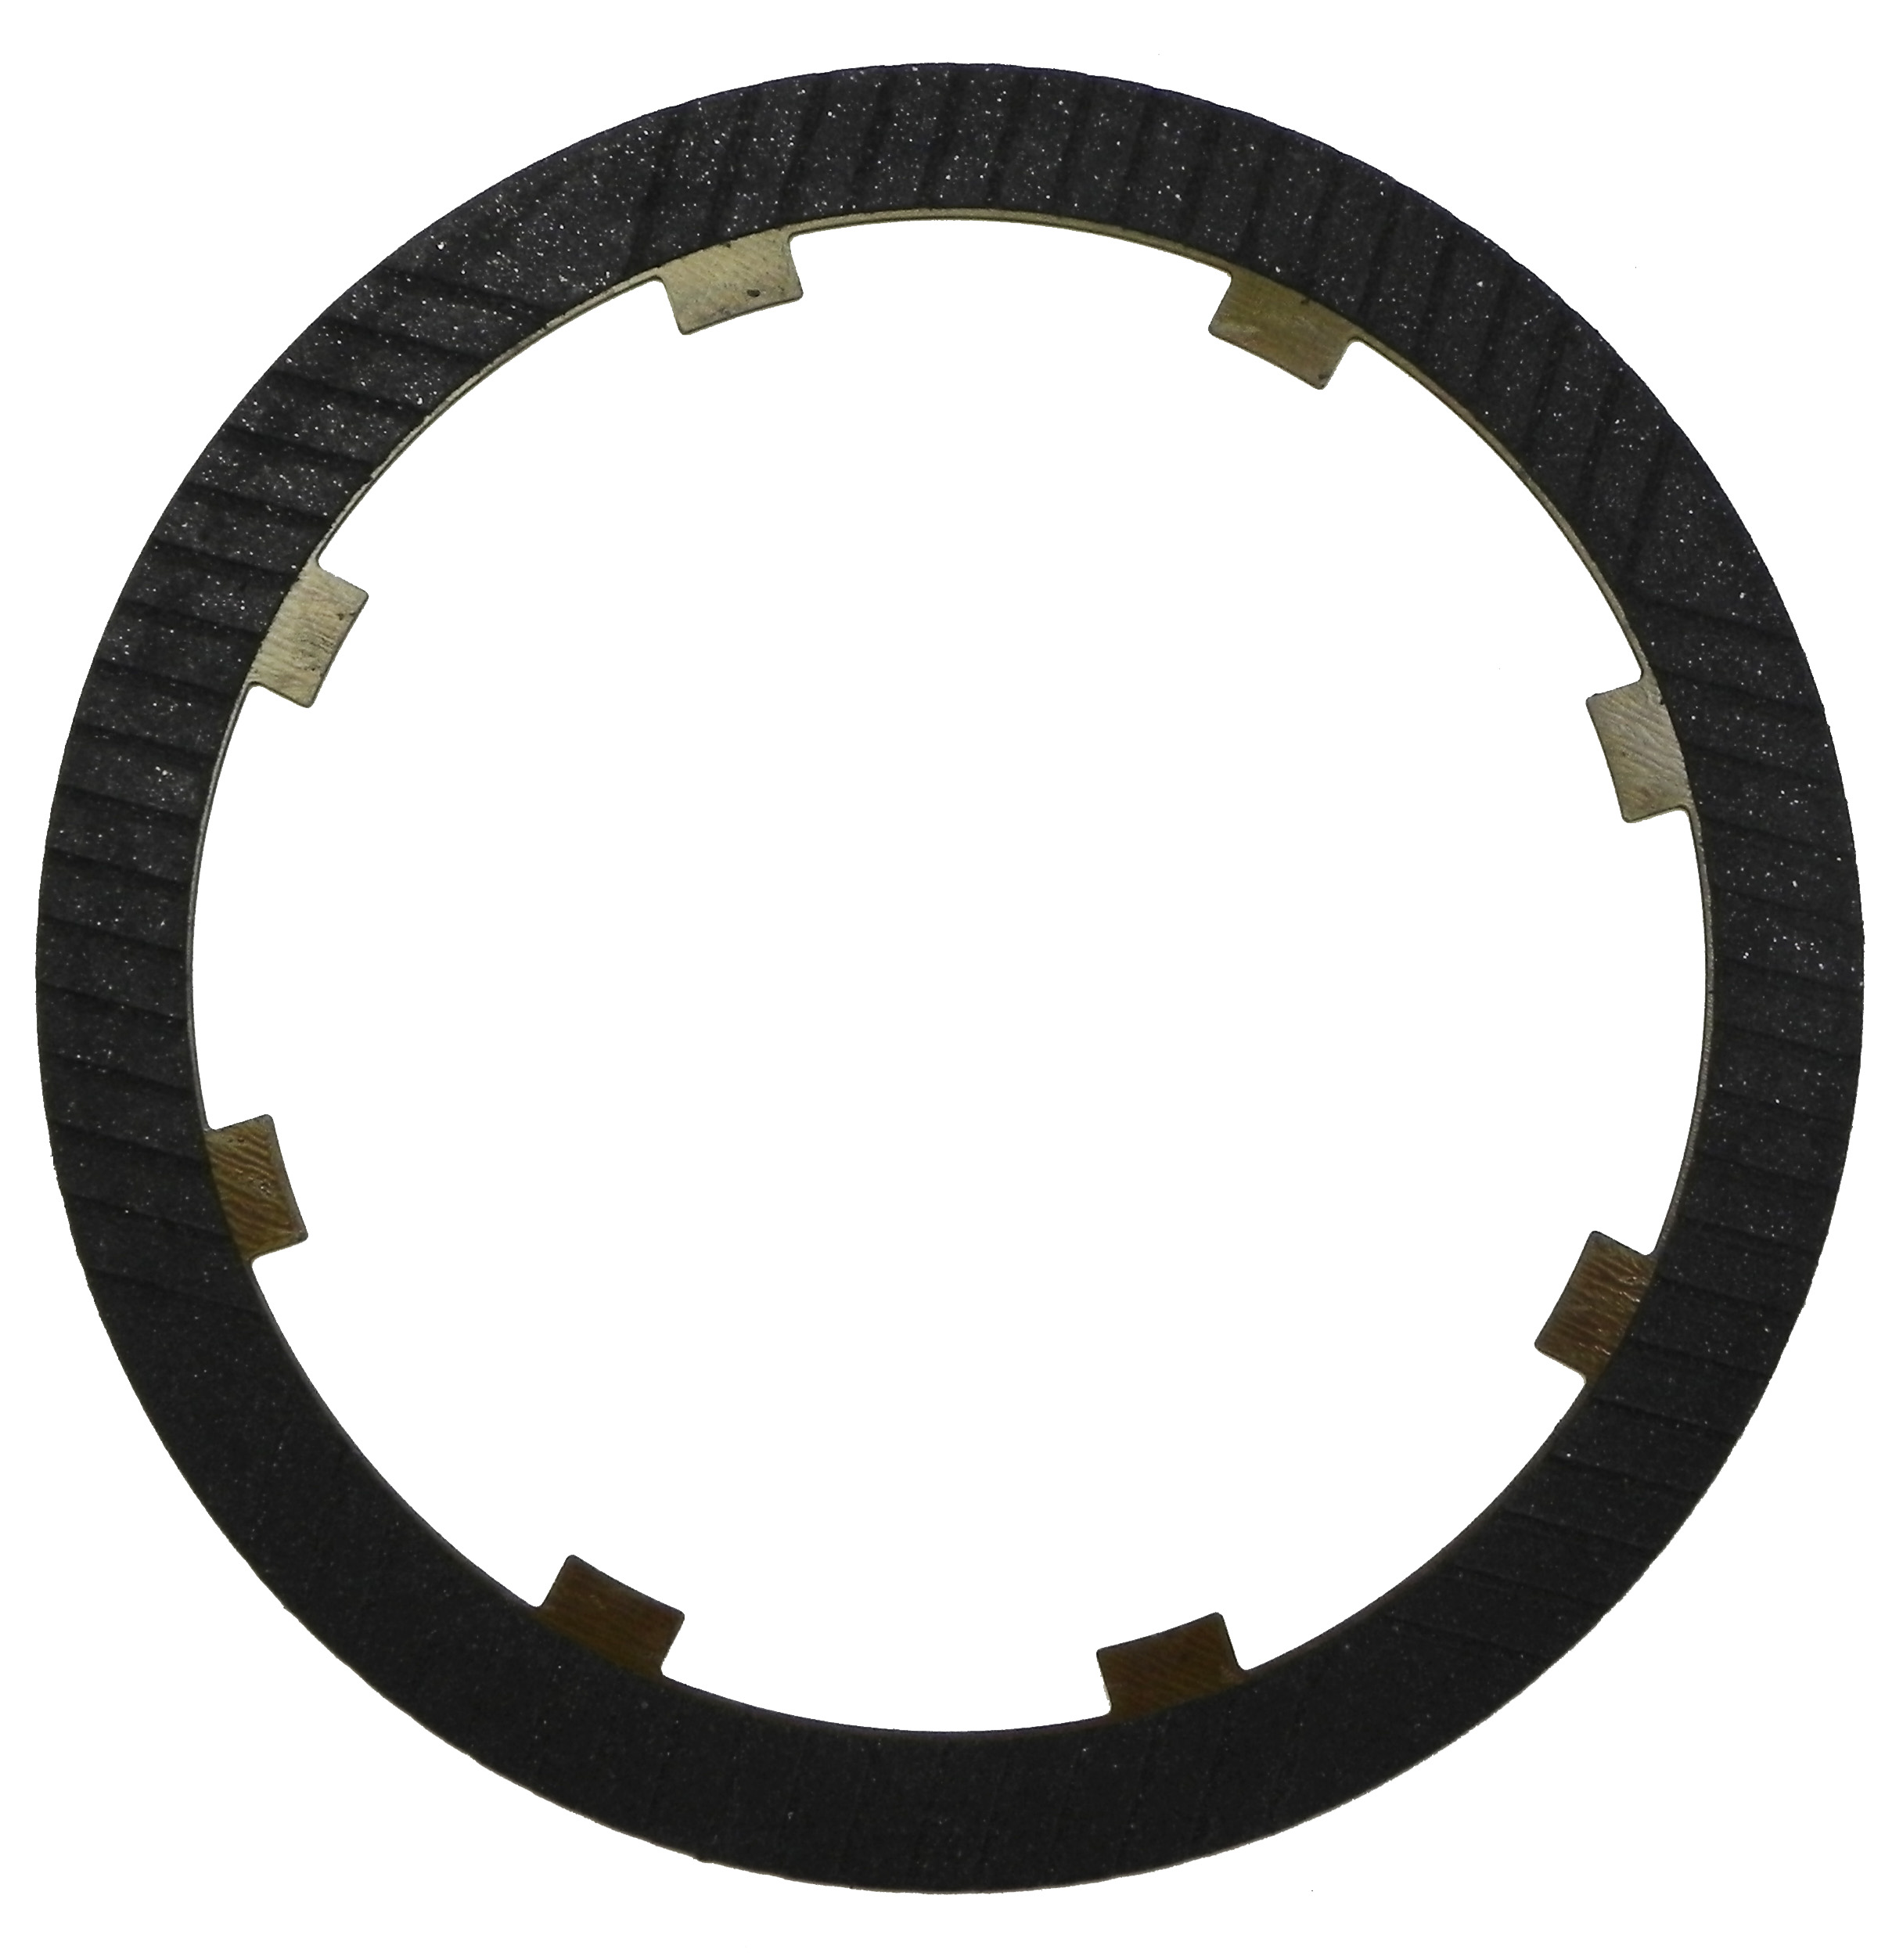 R558145 | 1998-ON Friction Clutch Plate High Energy Reverse Single Sided, ID Spline High Energy